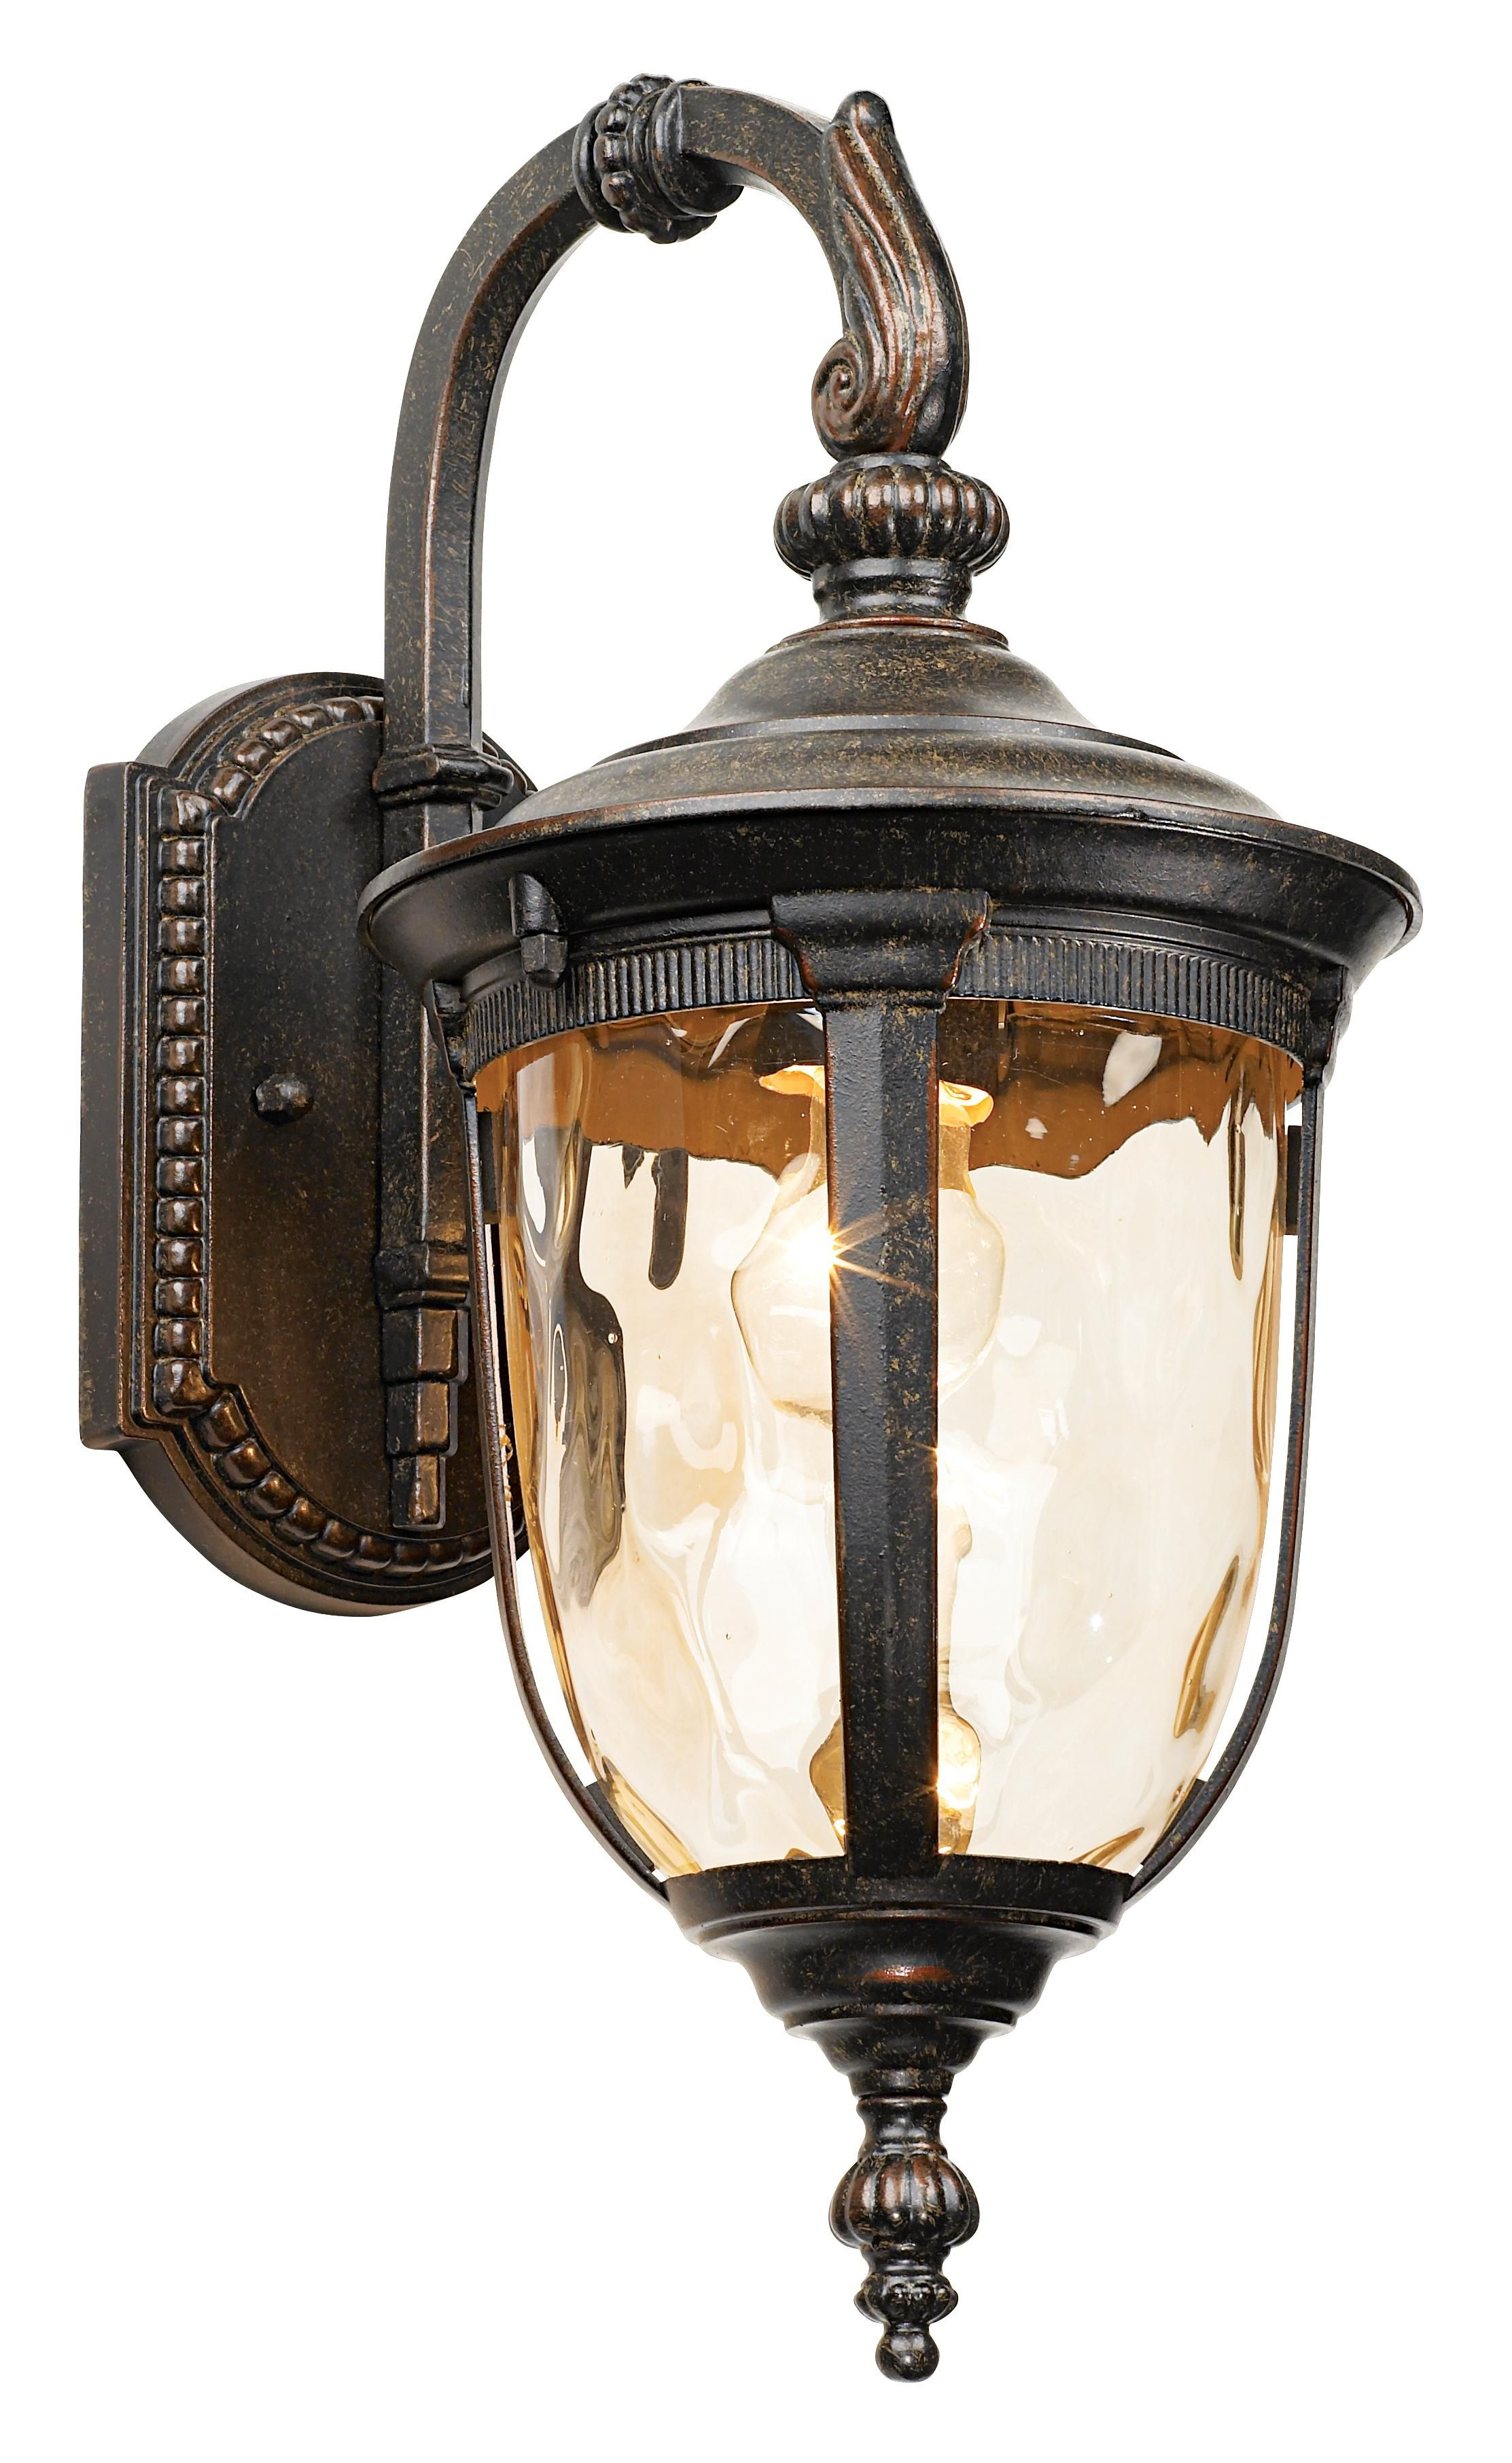 traditional outdoor wall lights on bellagio 16 1 2 high bronze downbridge outdoor wall light 46910 lamps plus outdoor wall light fixtures wall lights outdoor wall lighting outdoor wall light fixtures